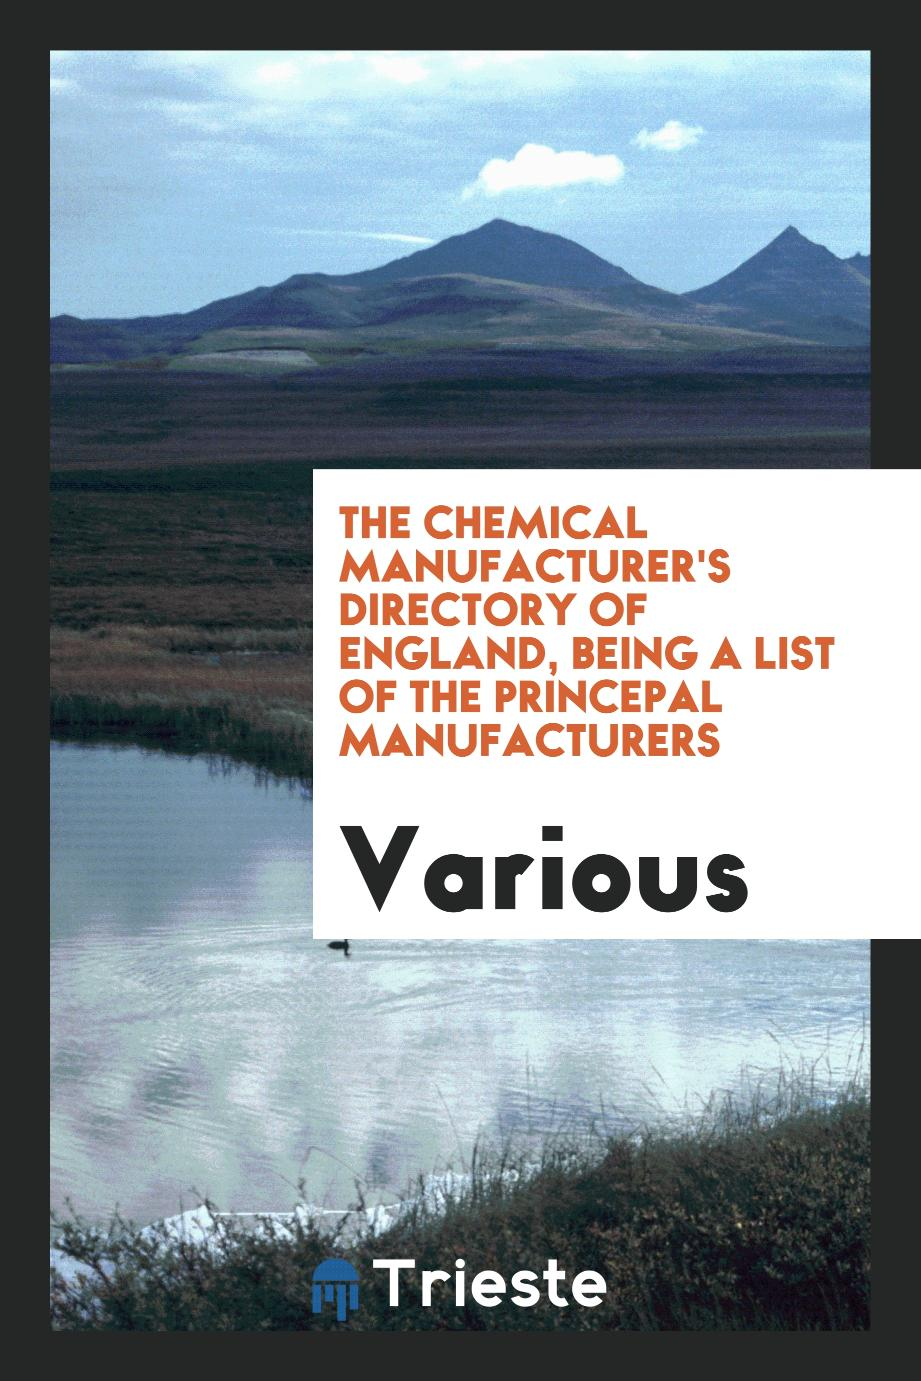 The chemical manufacturer's directory of England, being a list of the princepal manufacturers